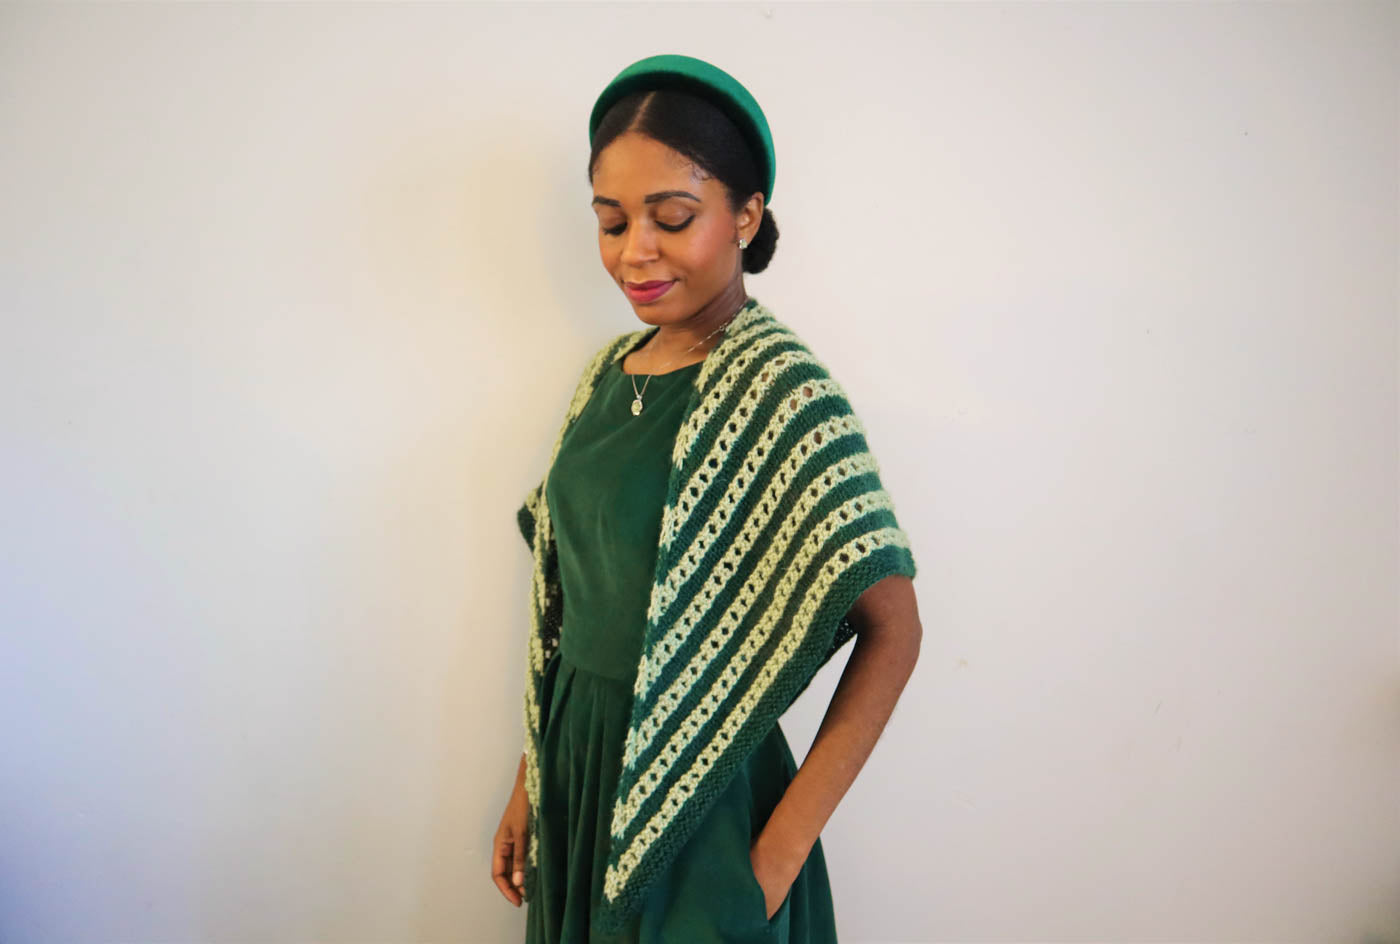 Women wearing knitted light green and spruce shawl over her shoulders. Women is wearing a spruce green dress, turned sideways with her left shoulder forward, looking down with her left hand in her pocket.